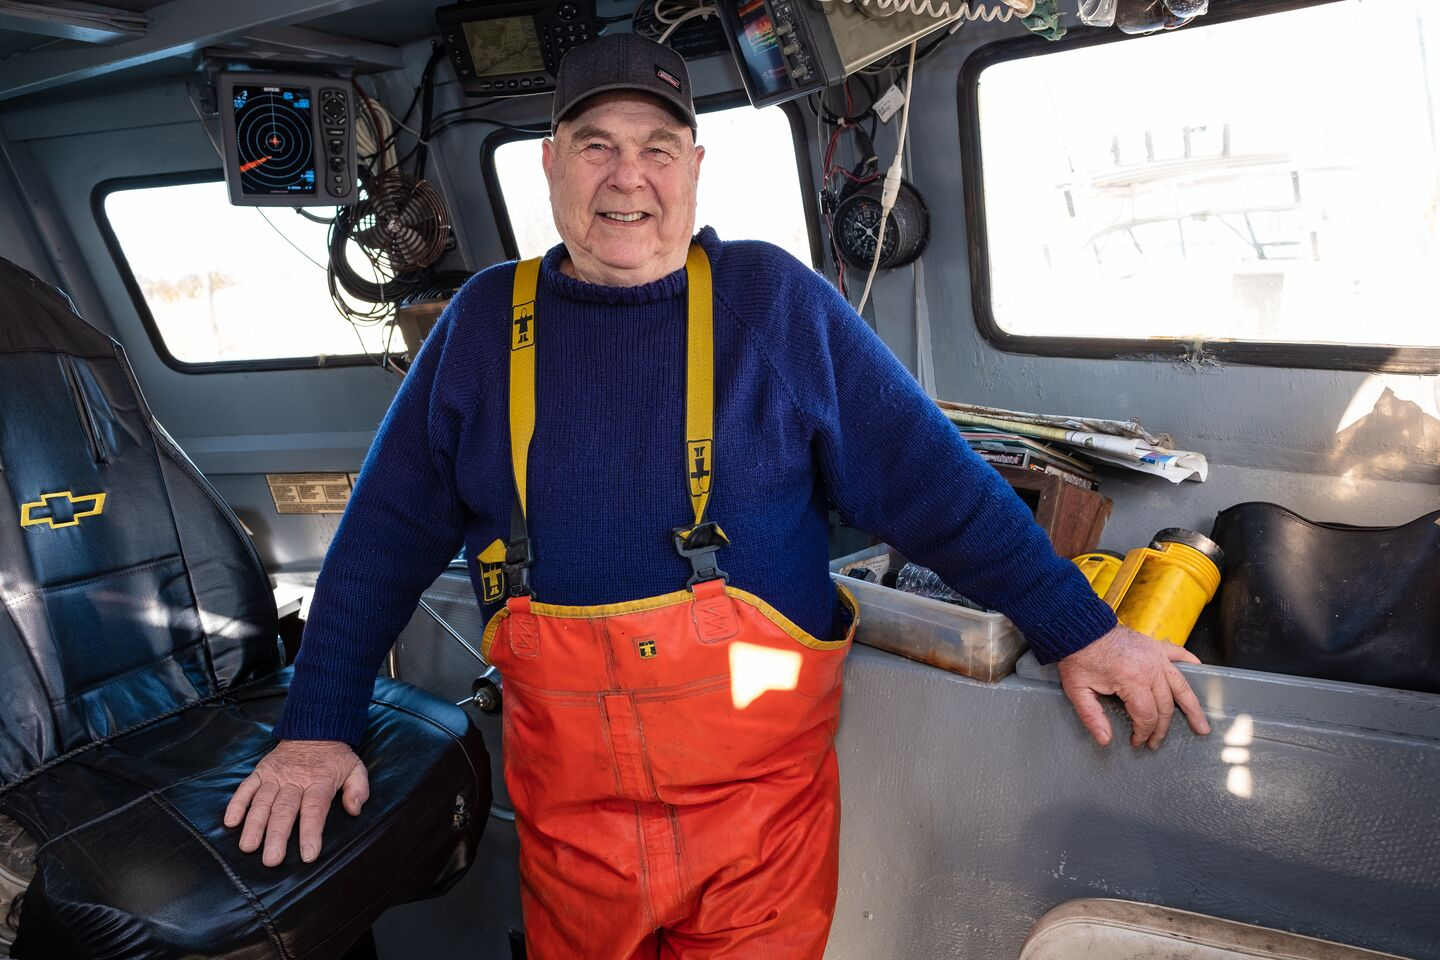 A fisherman in his 70s stops for a smile while below deck on a commercial fishing boat.